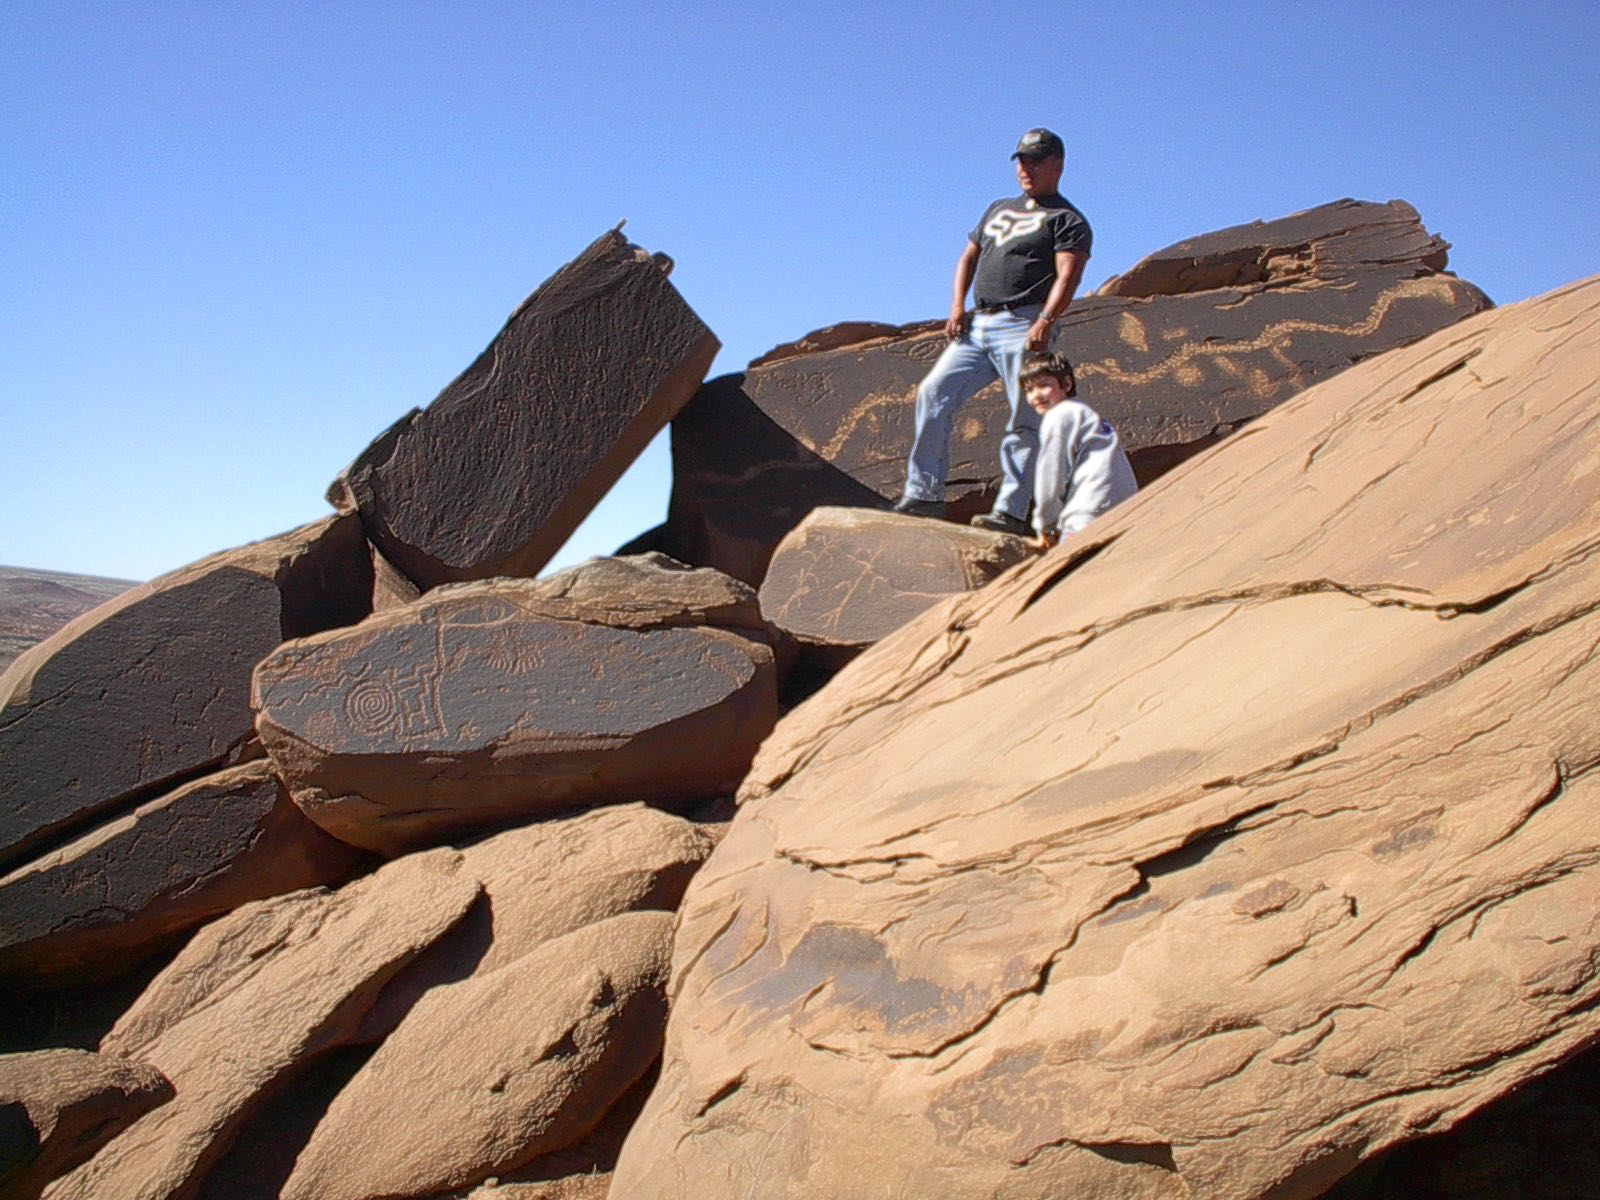 Justin and Little-Left-Handed Hunter On Petroglyphs